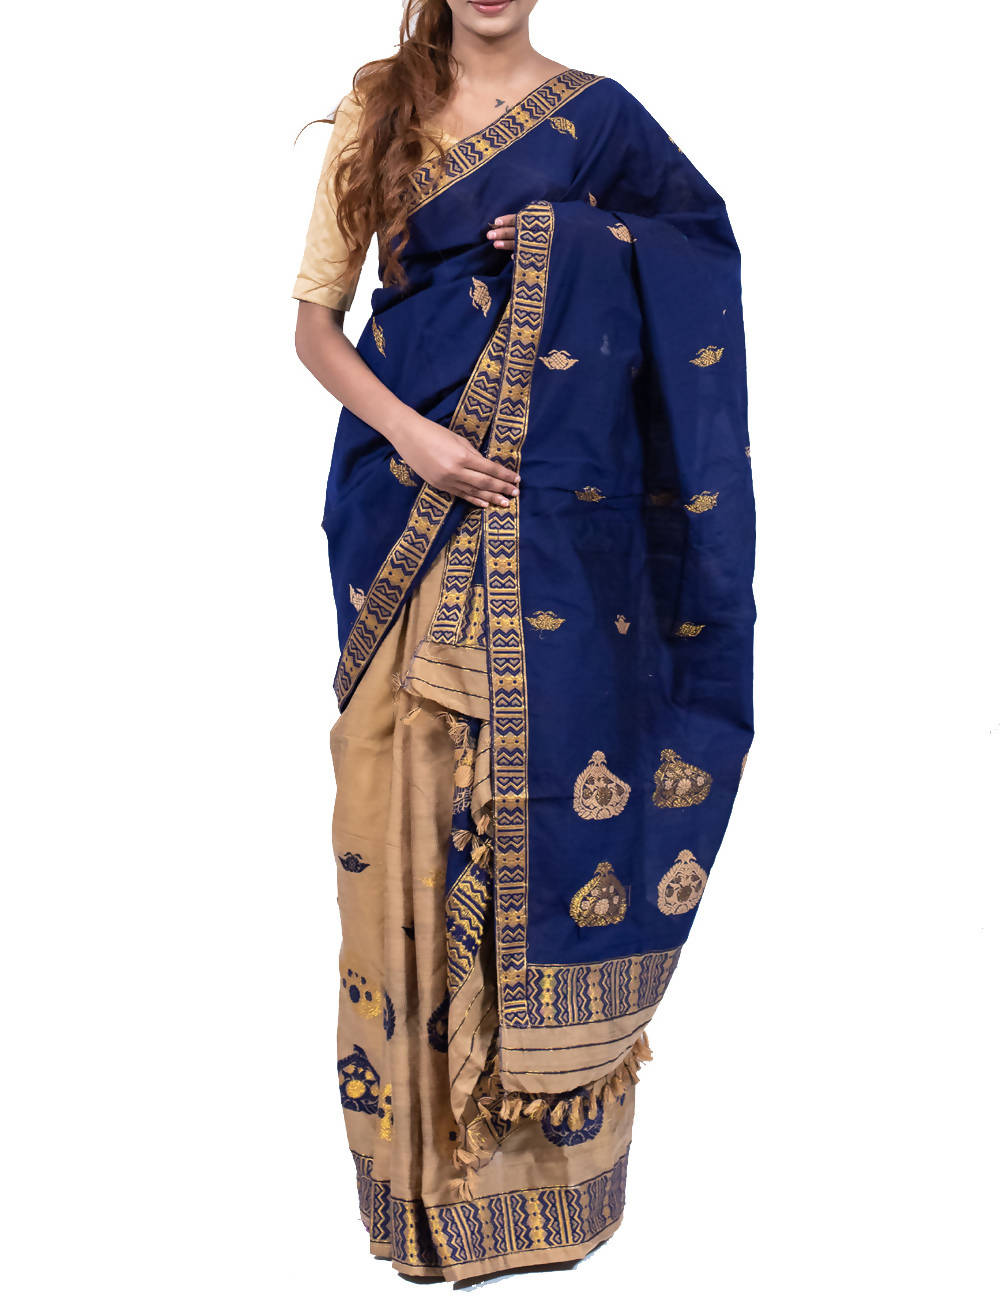 Midnight Blue Assam Cotton Mekhela Chador